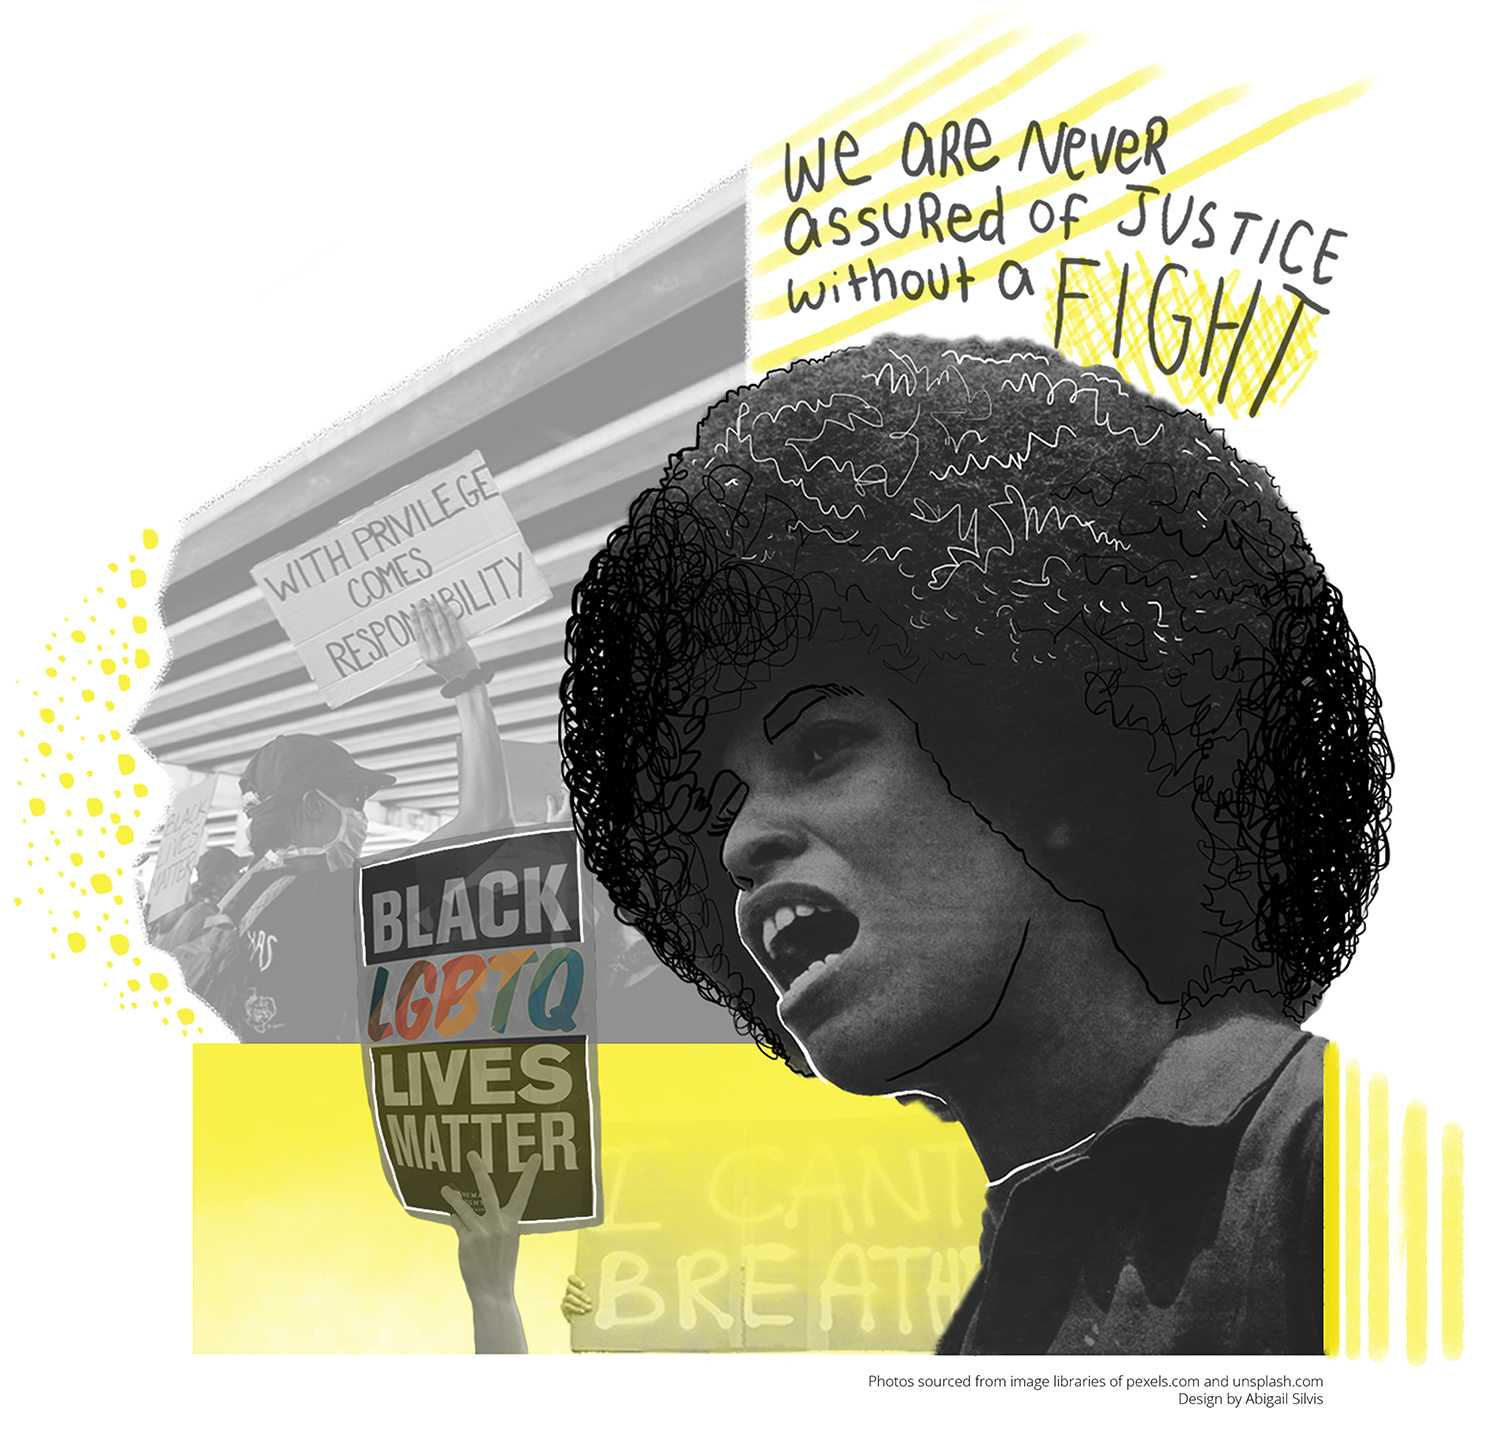 Angela Davis is an educator, author and social activist who has been an advocate against racism, sexism, classism and the prison system. Davis is also a Black lesbian woman. The voices at the intersection of race and sexual orientation or gender identity - especially the voices of Black trans individuals - should be heard. By Abigail Silvis.